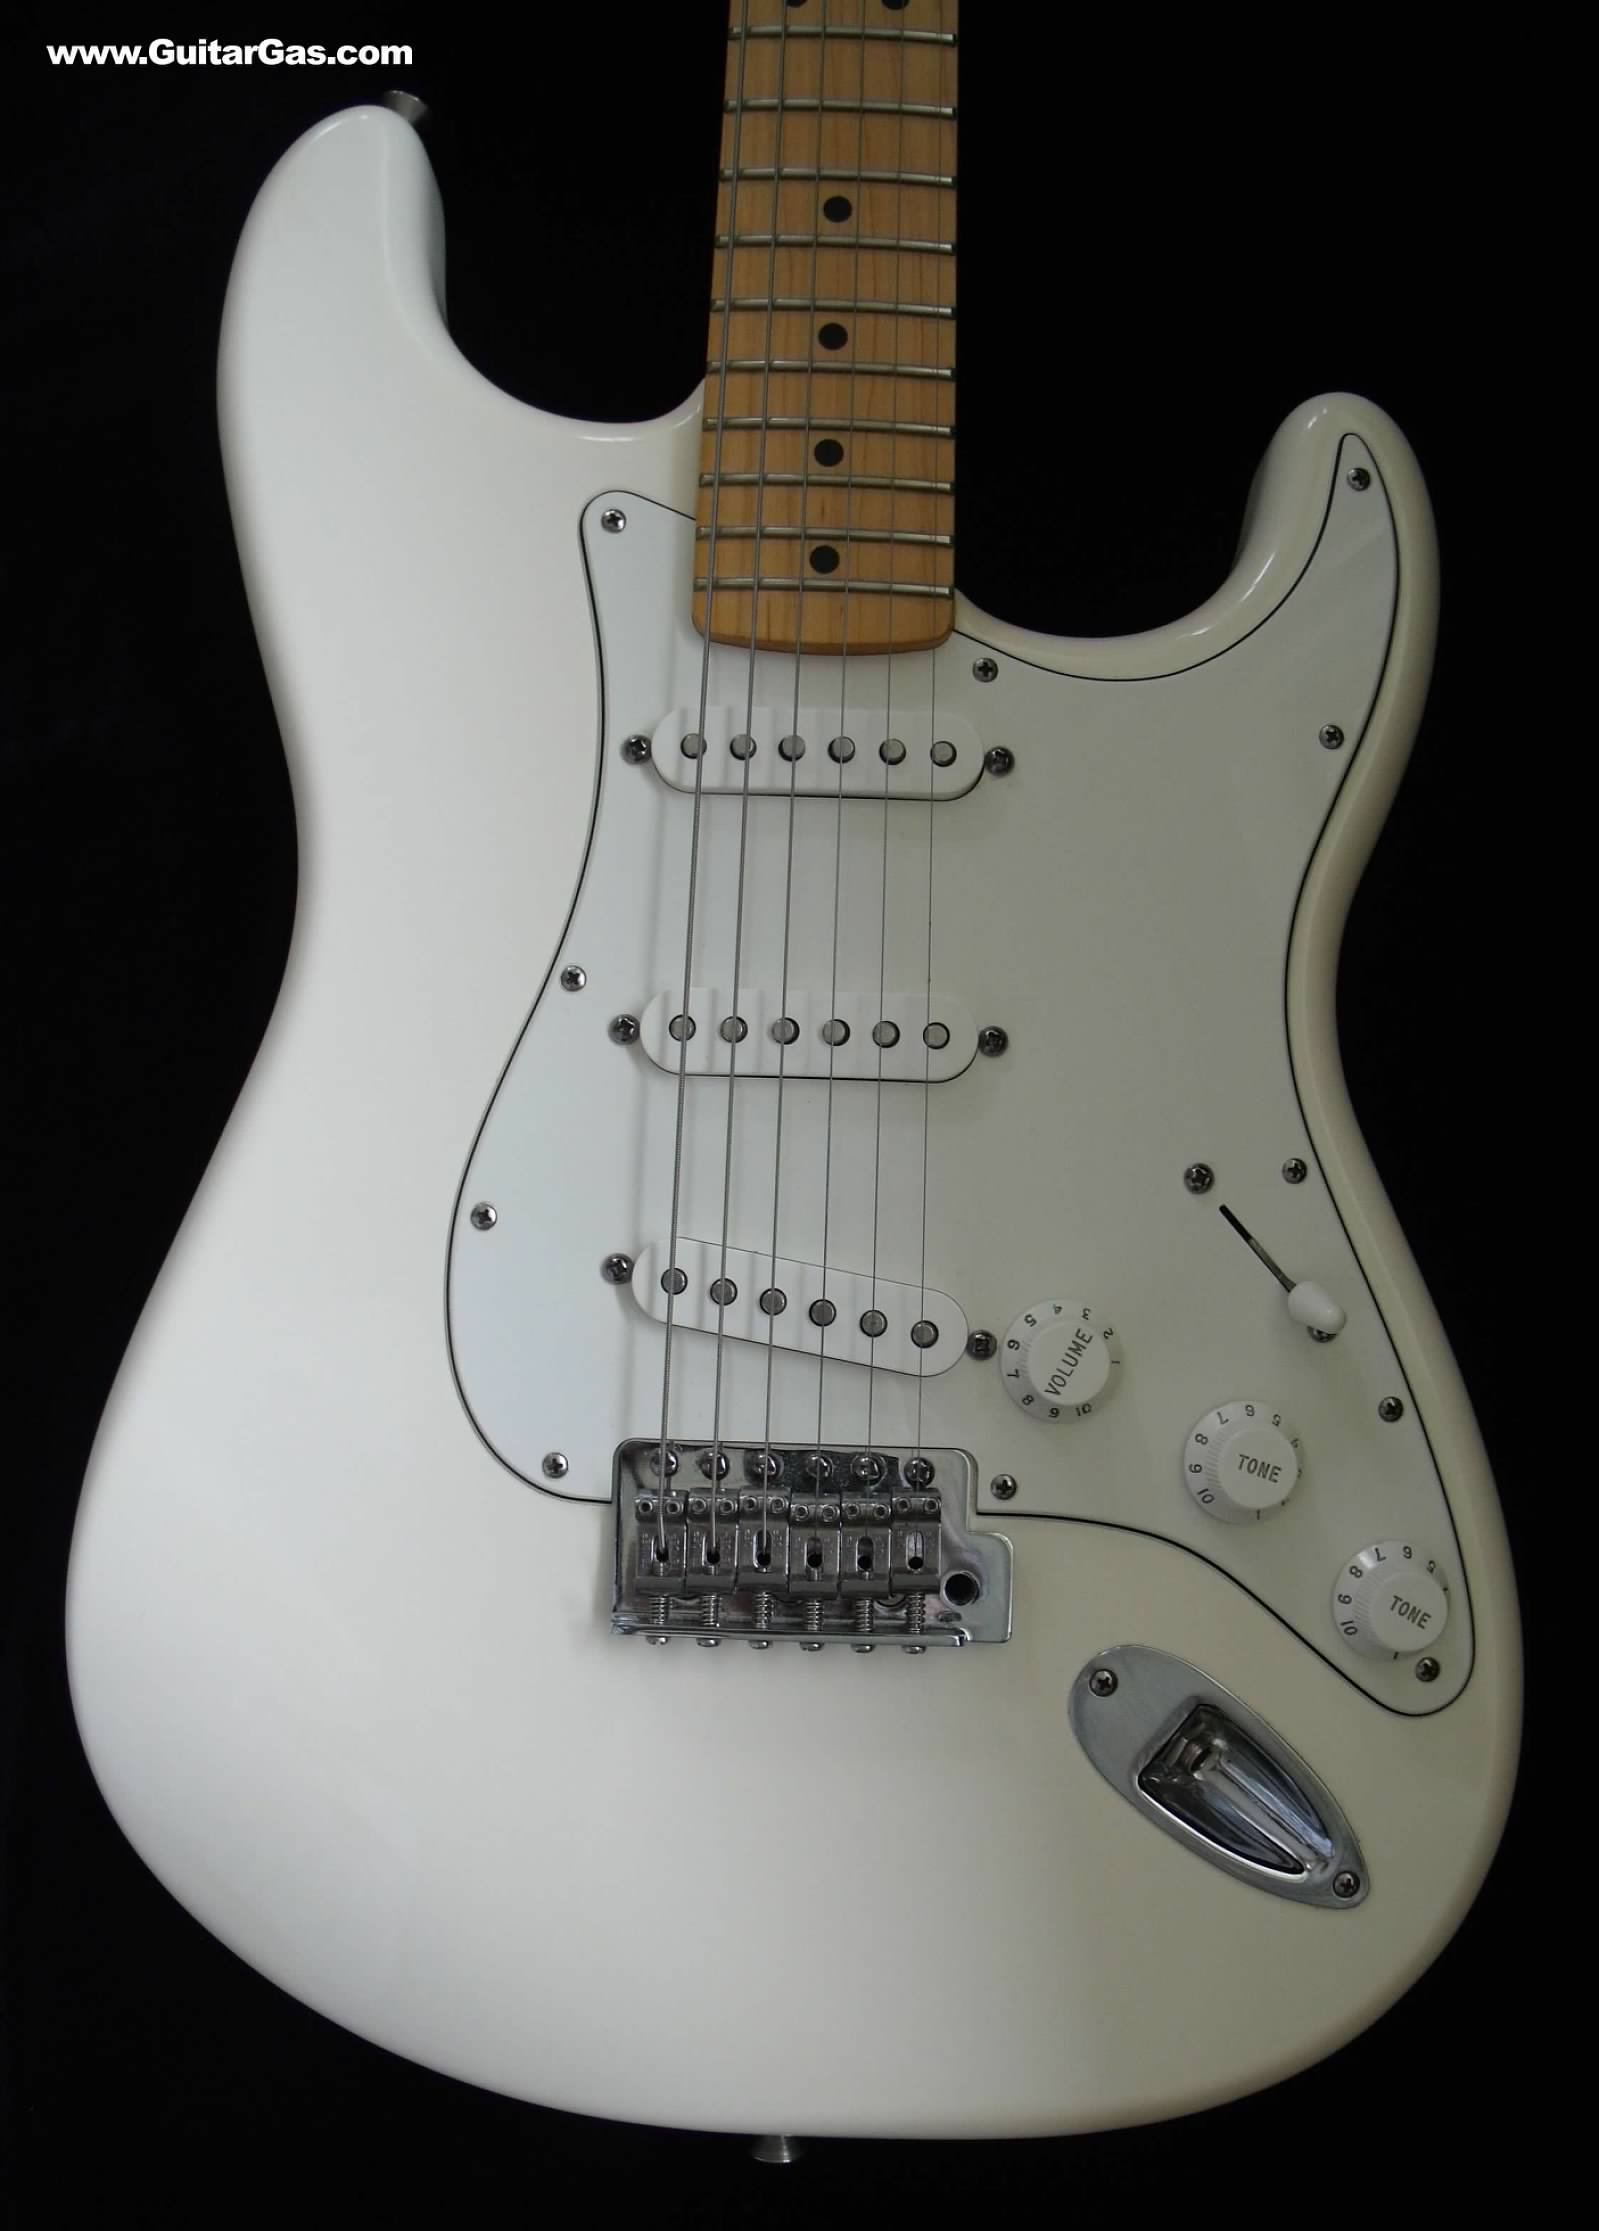 2008 Olympic White Made in Mexico Fender Stratocaster